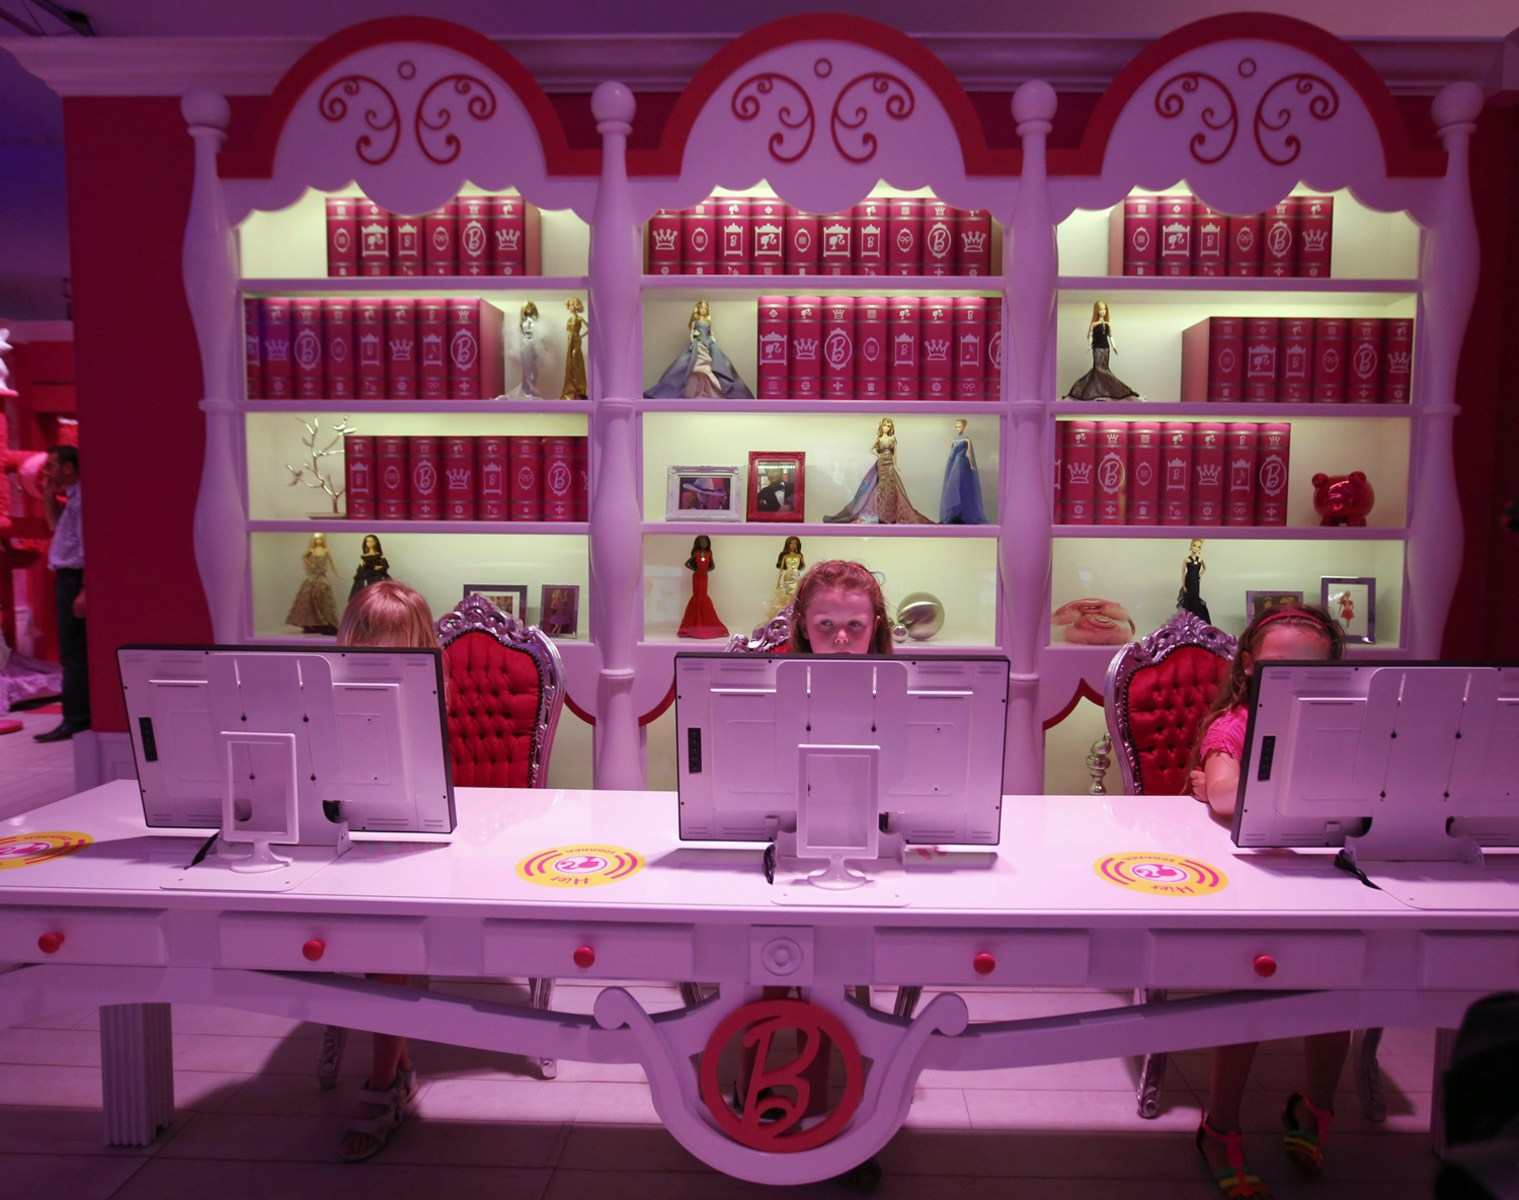 Barbie Bedroom In A Box: Barbie's Dreamhouse Now Life-size Reality In Florida